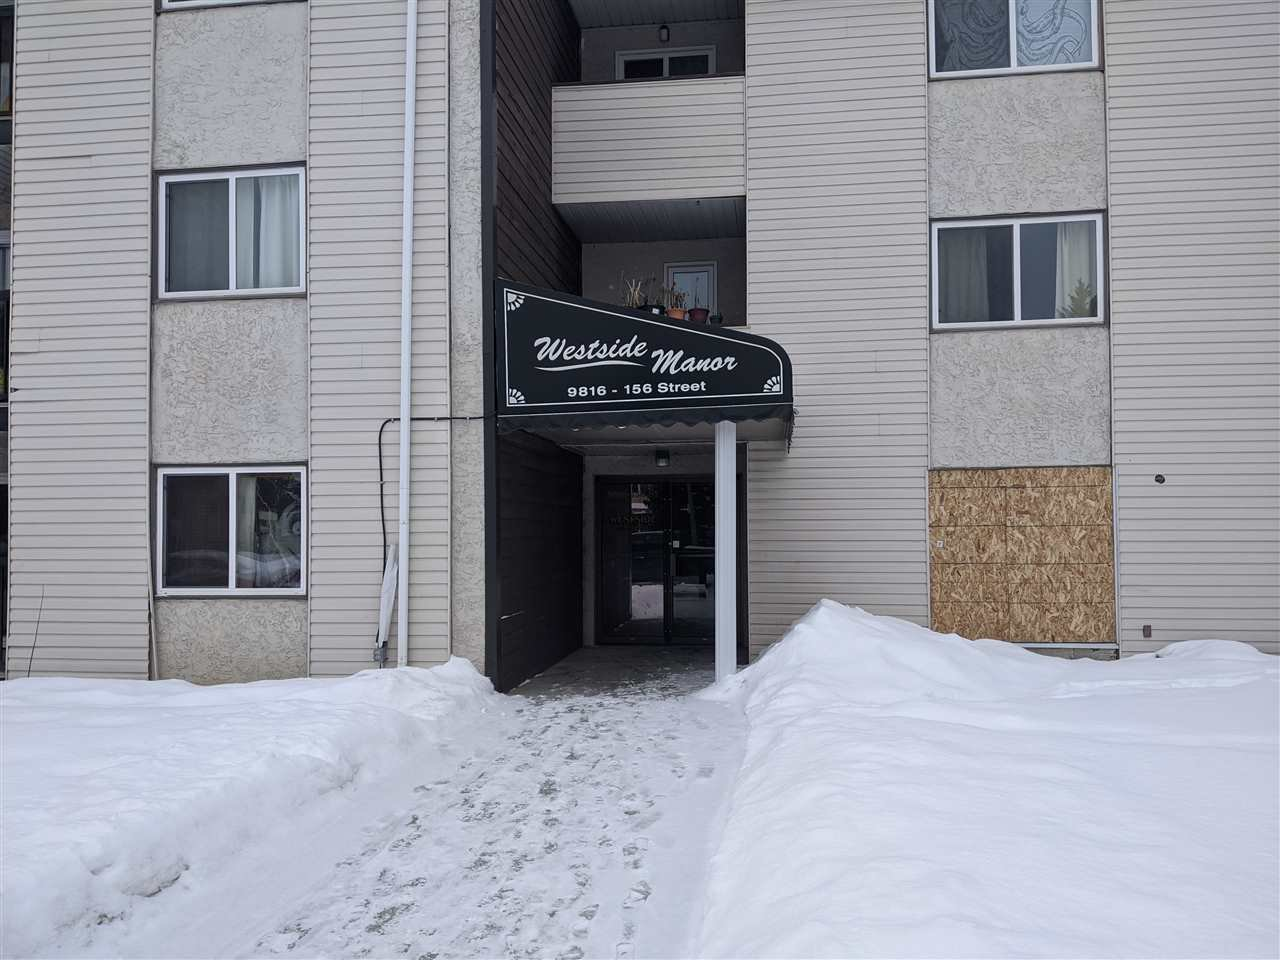 Main Photo: 311 9816 156 Street in Edmonton: Zone 22 Condo for sale : MLS®# E4189268